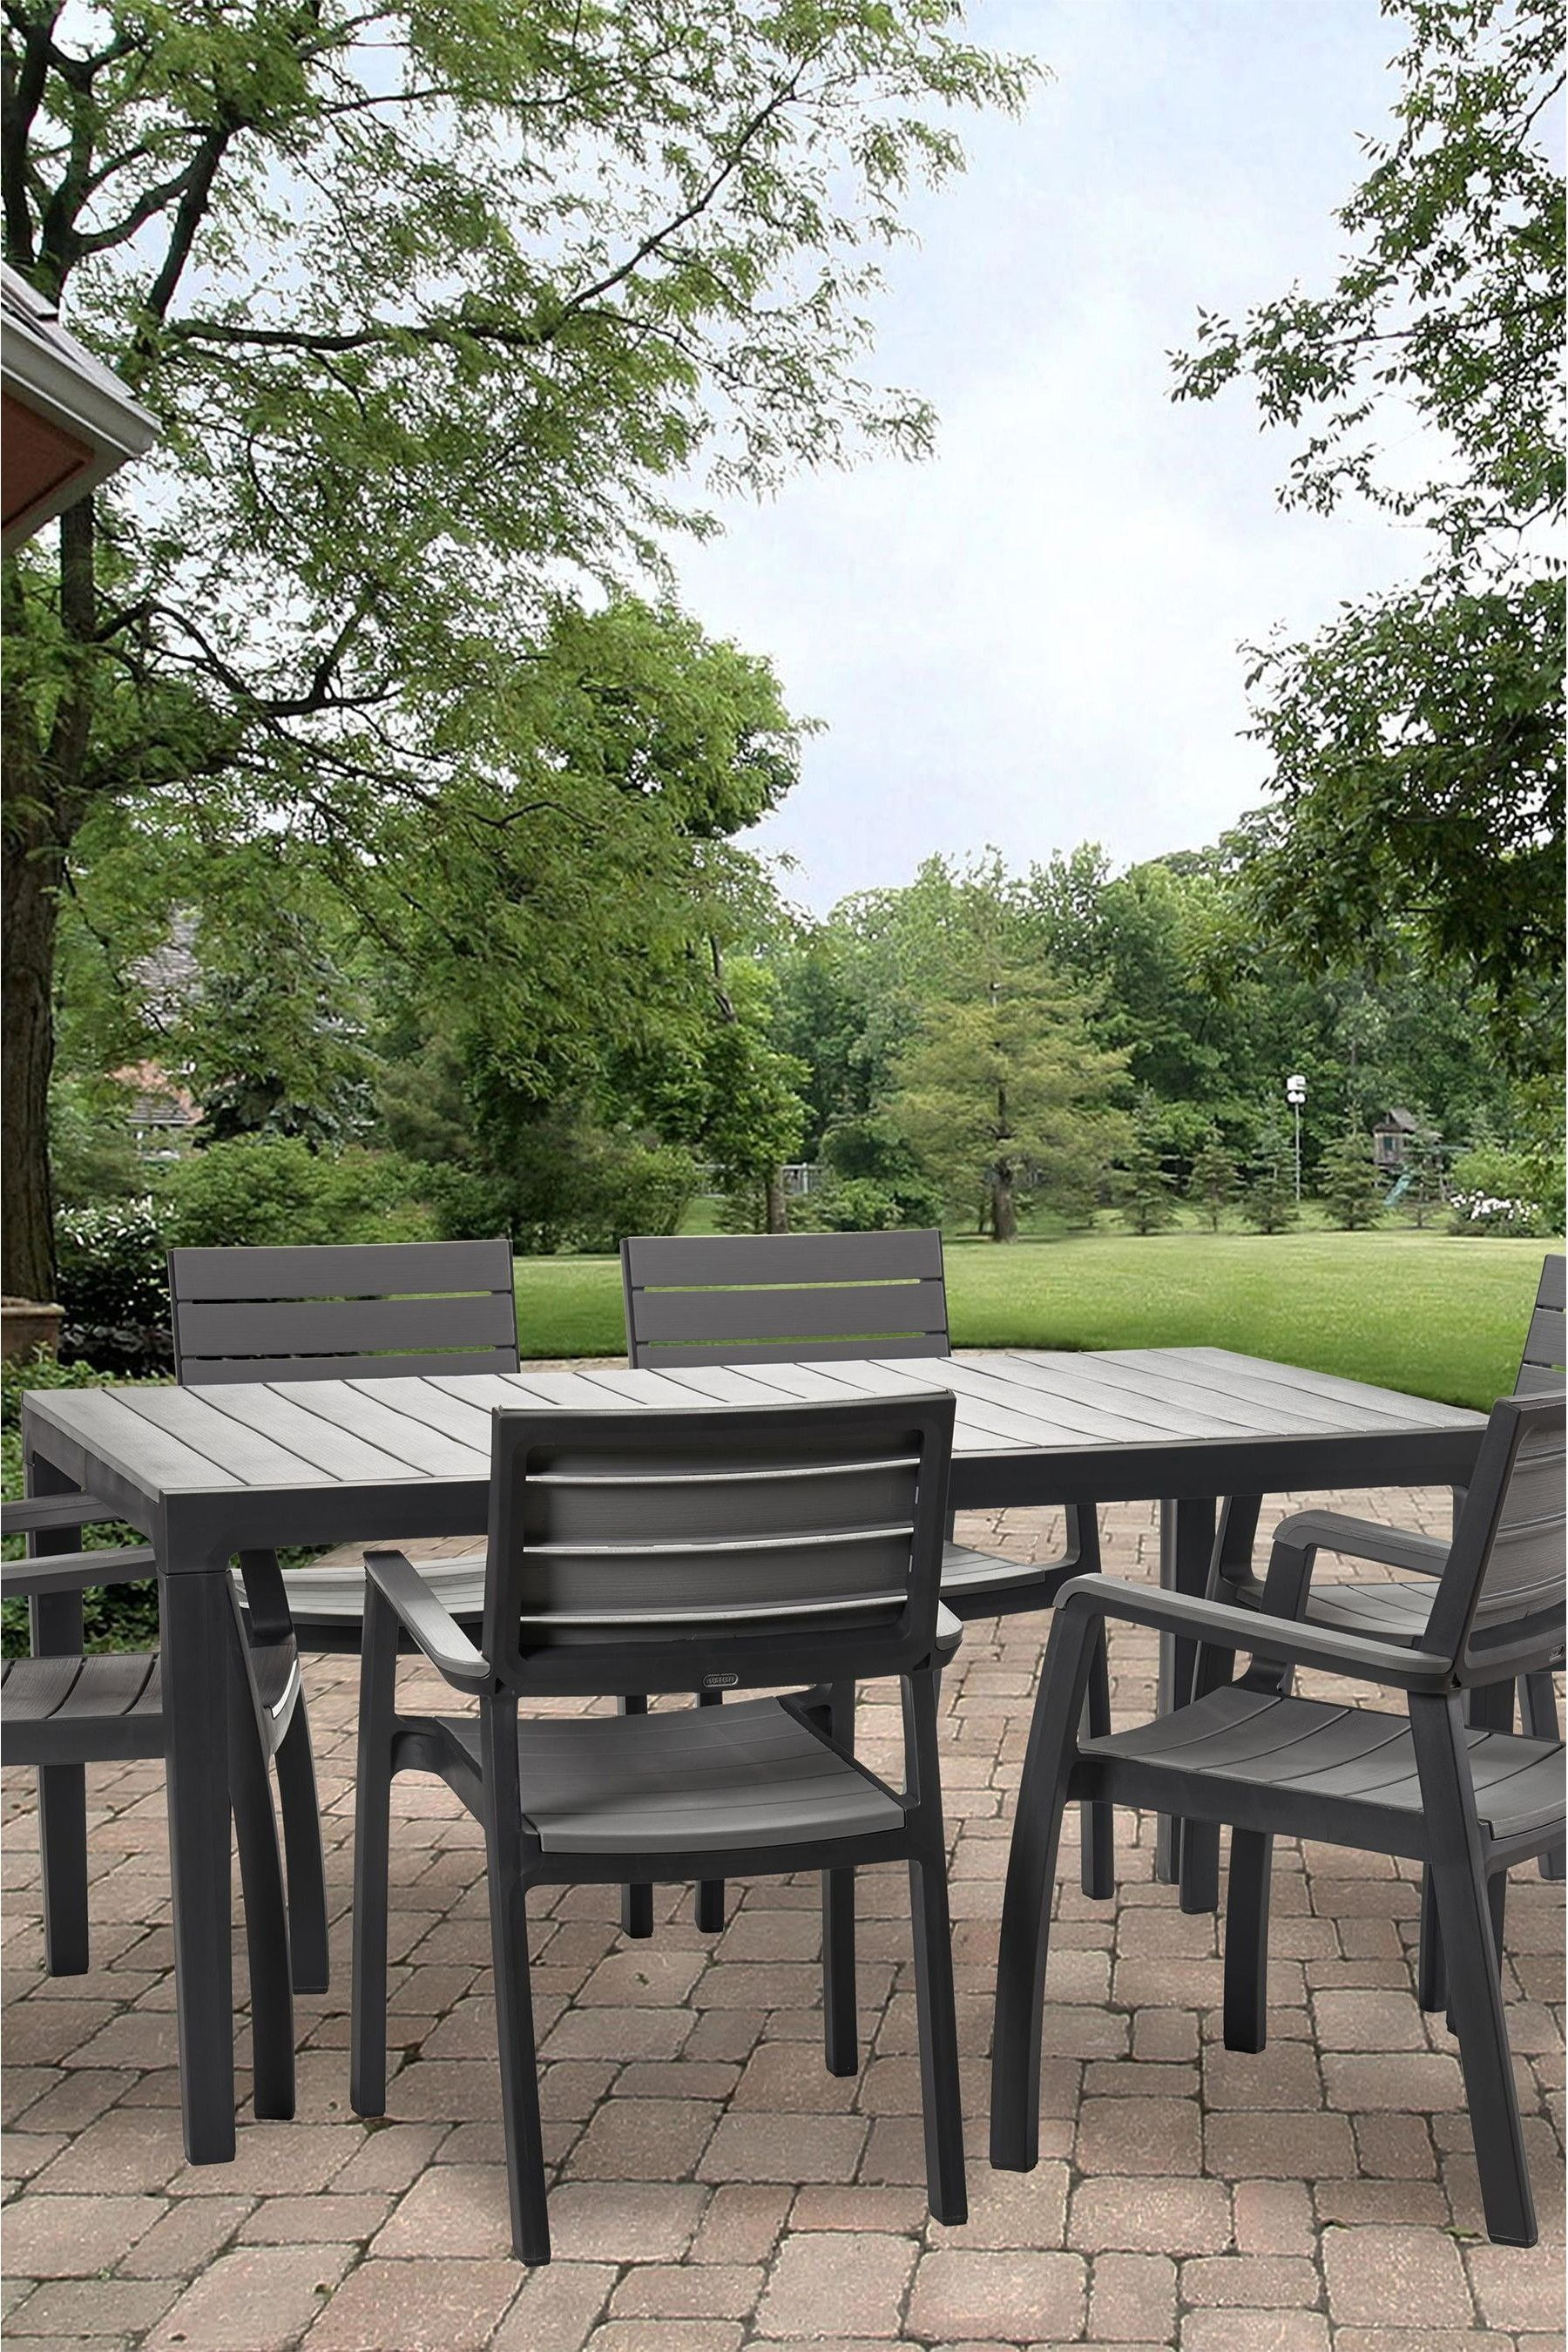 Harmony Dining Table And 6 Chairs By Keter - Grey | Products ...